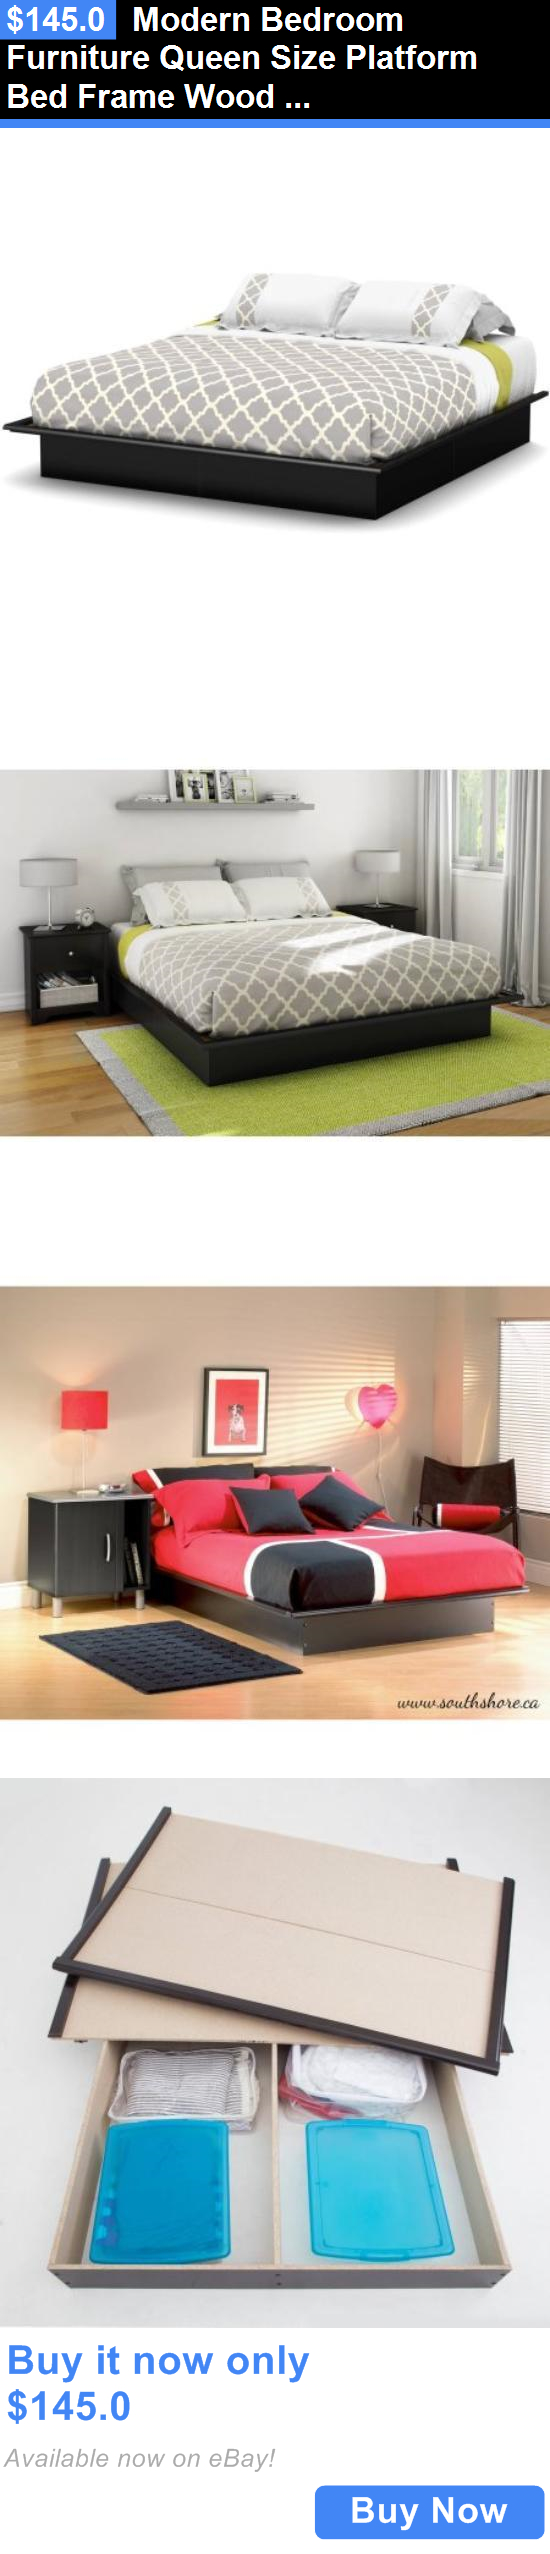 furniture Modern Bedroom Furniture Queen Size Platform Bed Frame